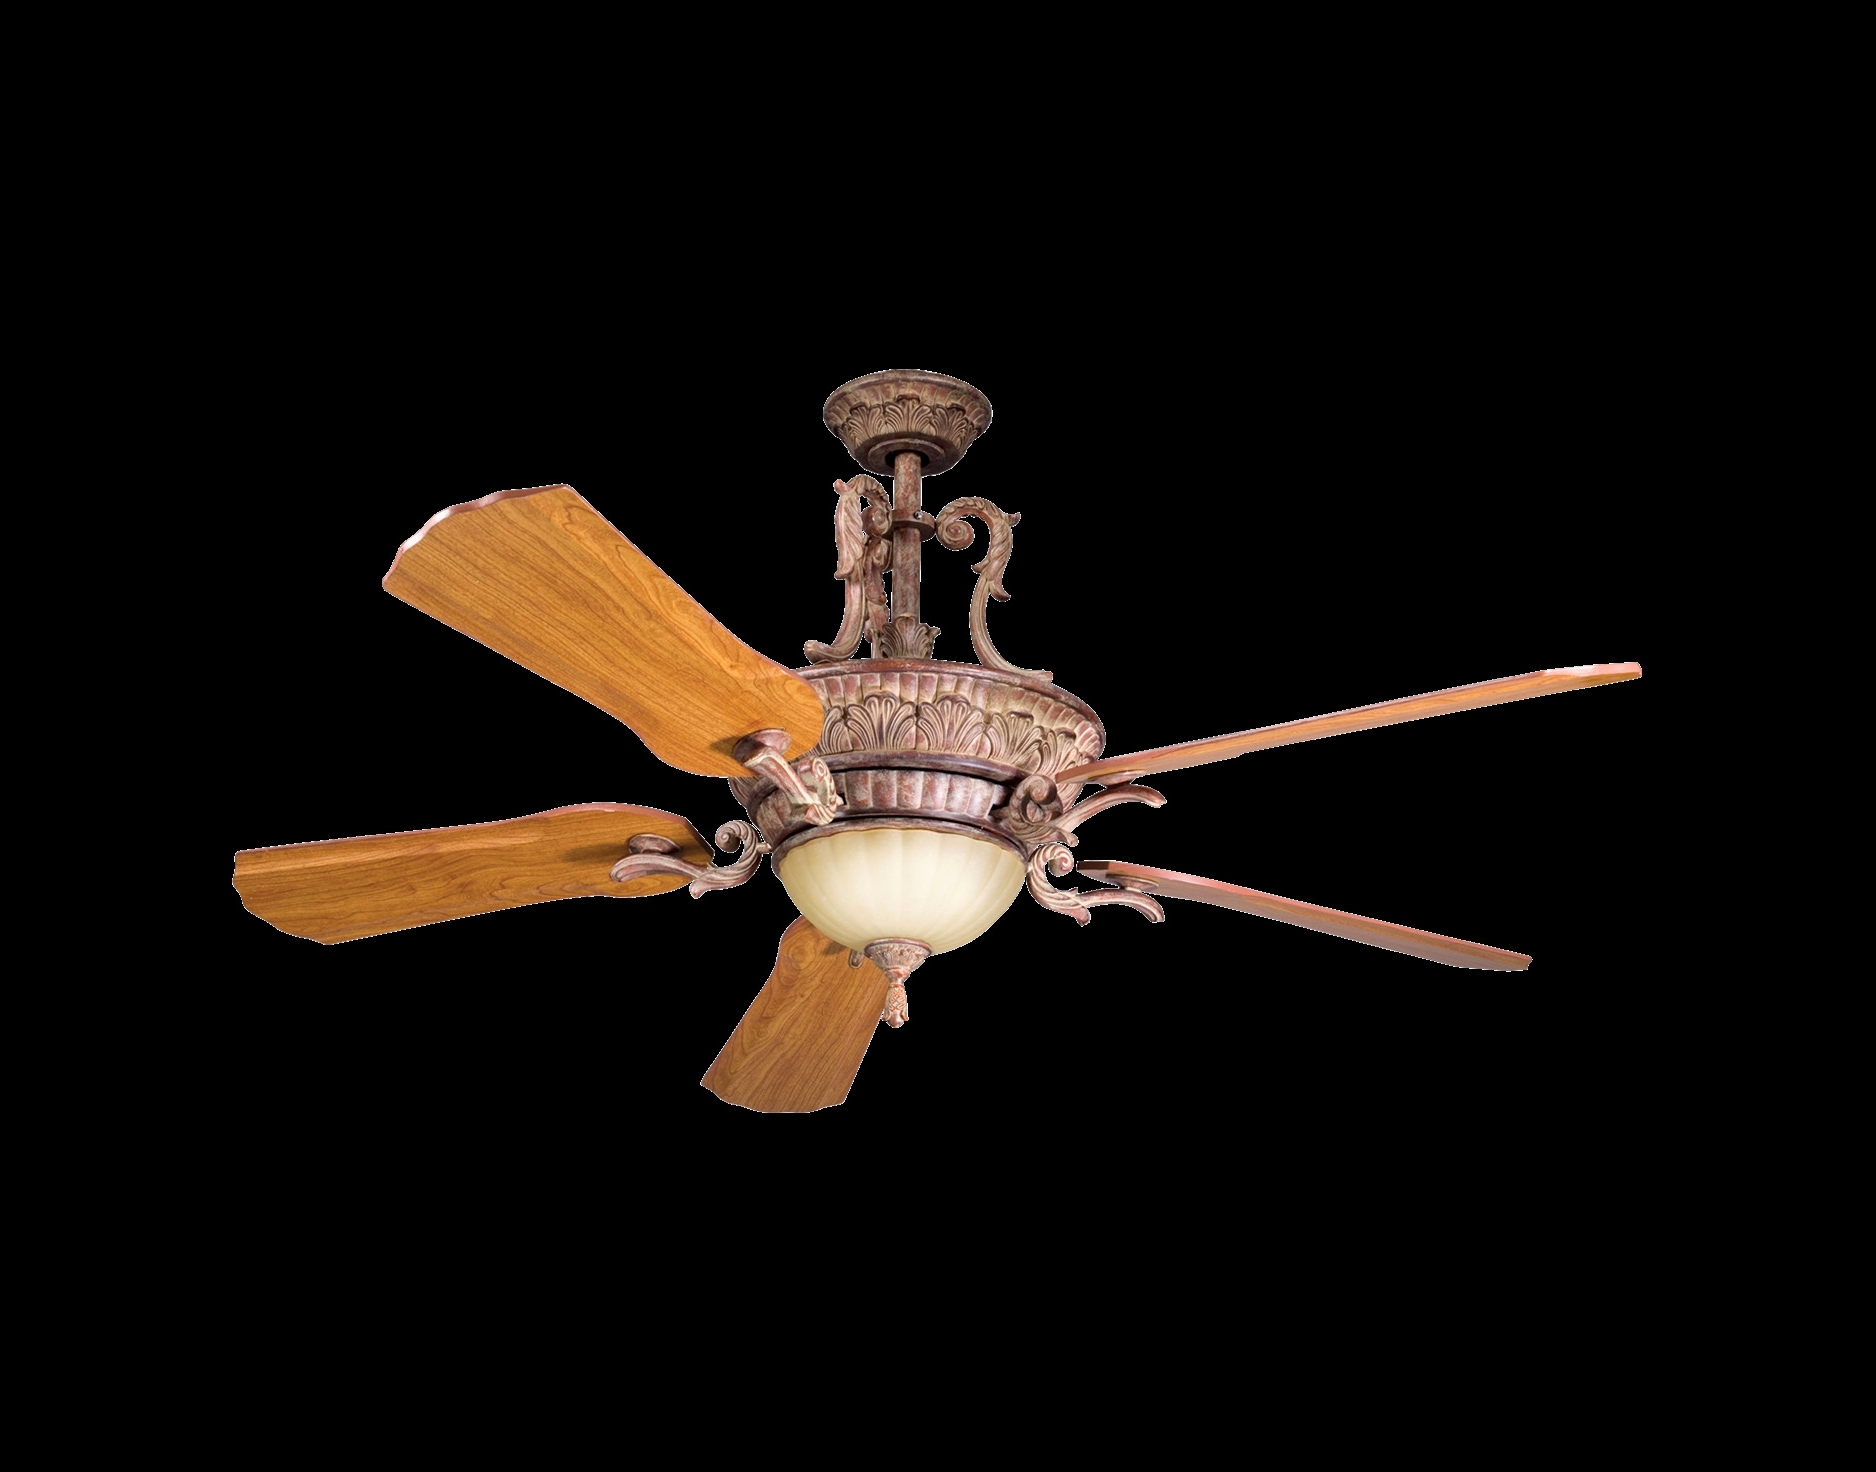 Newest Victorian Outdoor Ceiling Fans In Outdoor Ceiling Fan With Light Awesome Victorian Ceiling Fans Luxury (View 11 of 20)